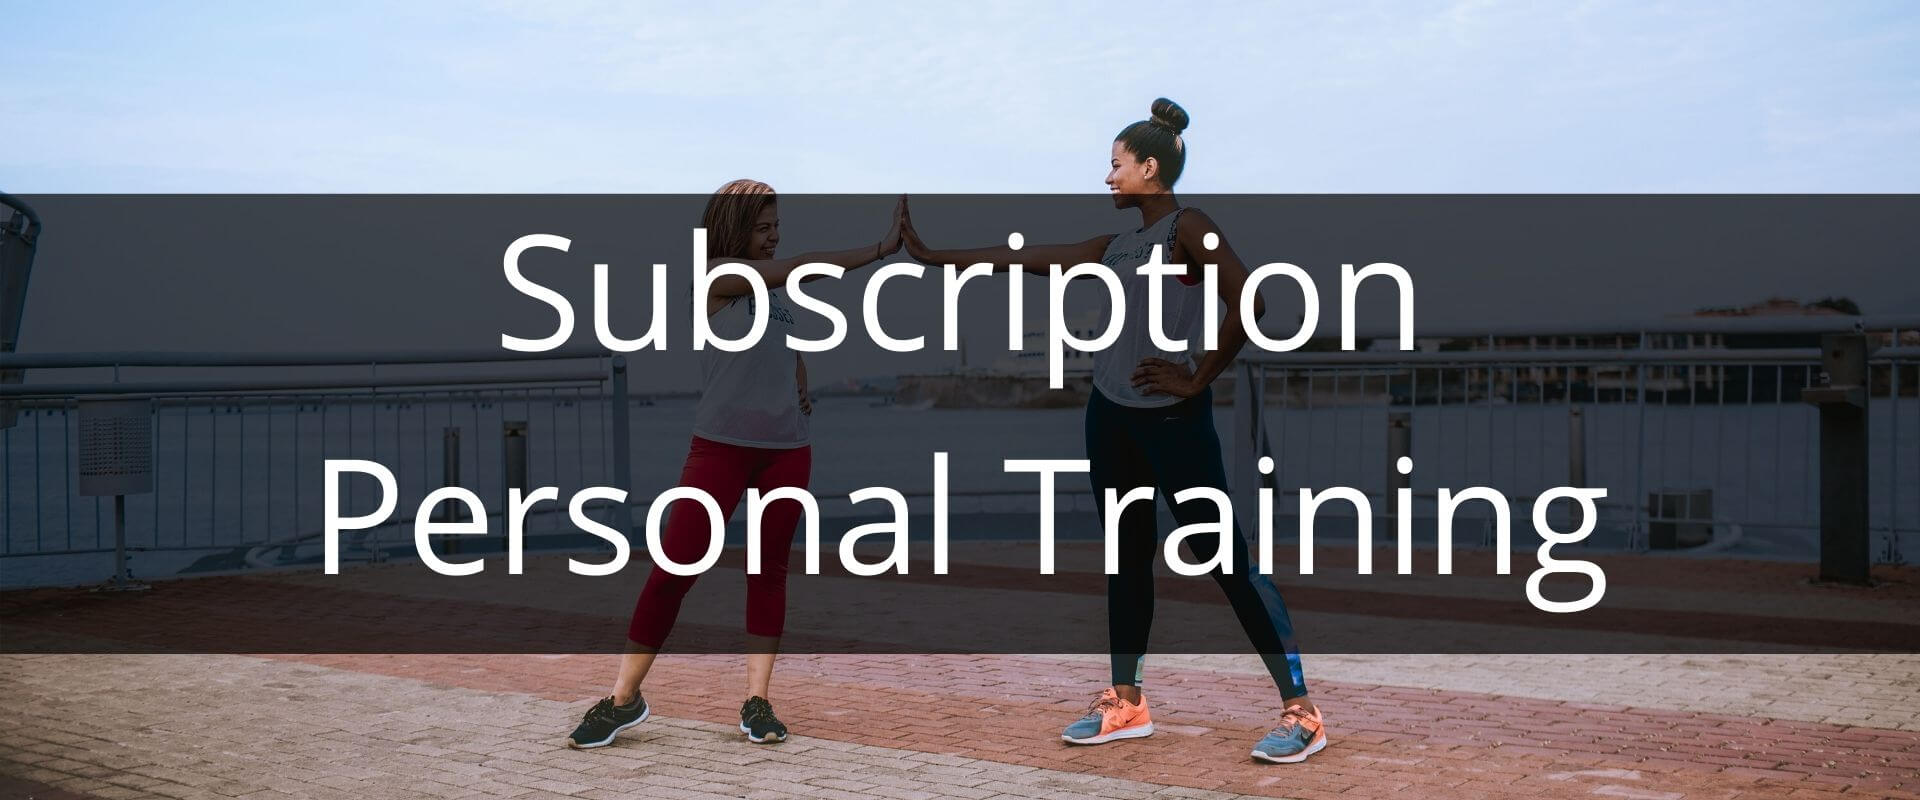 Subscription Personal Training Thumbnail